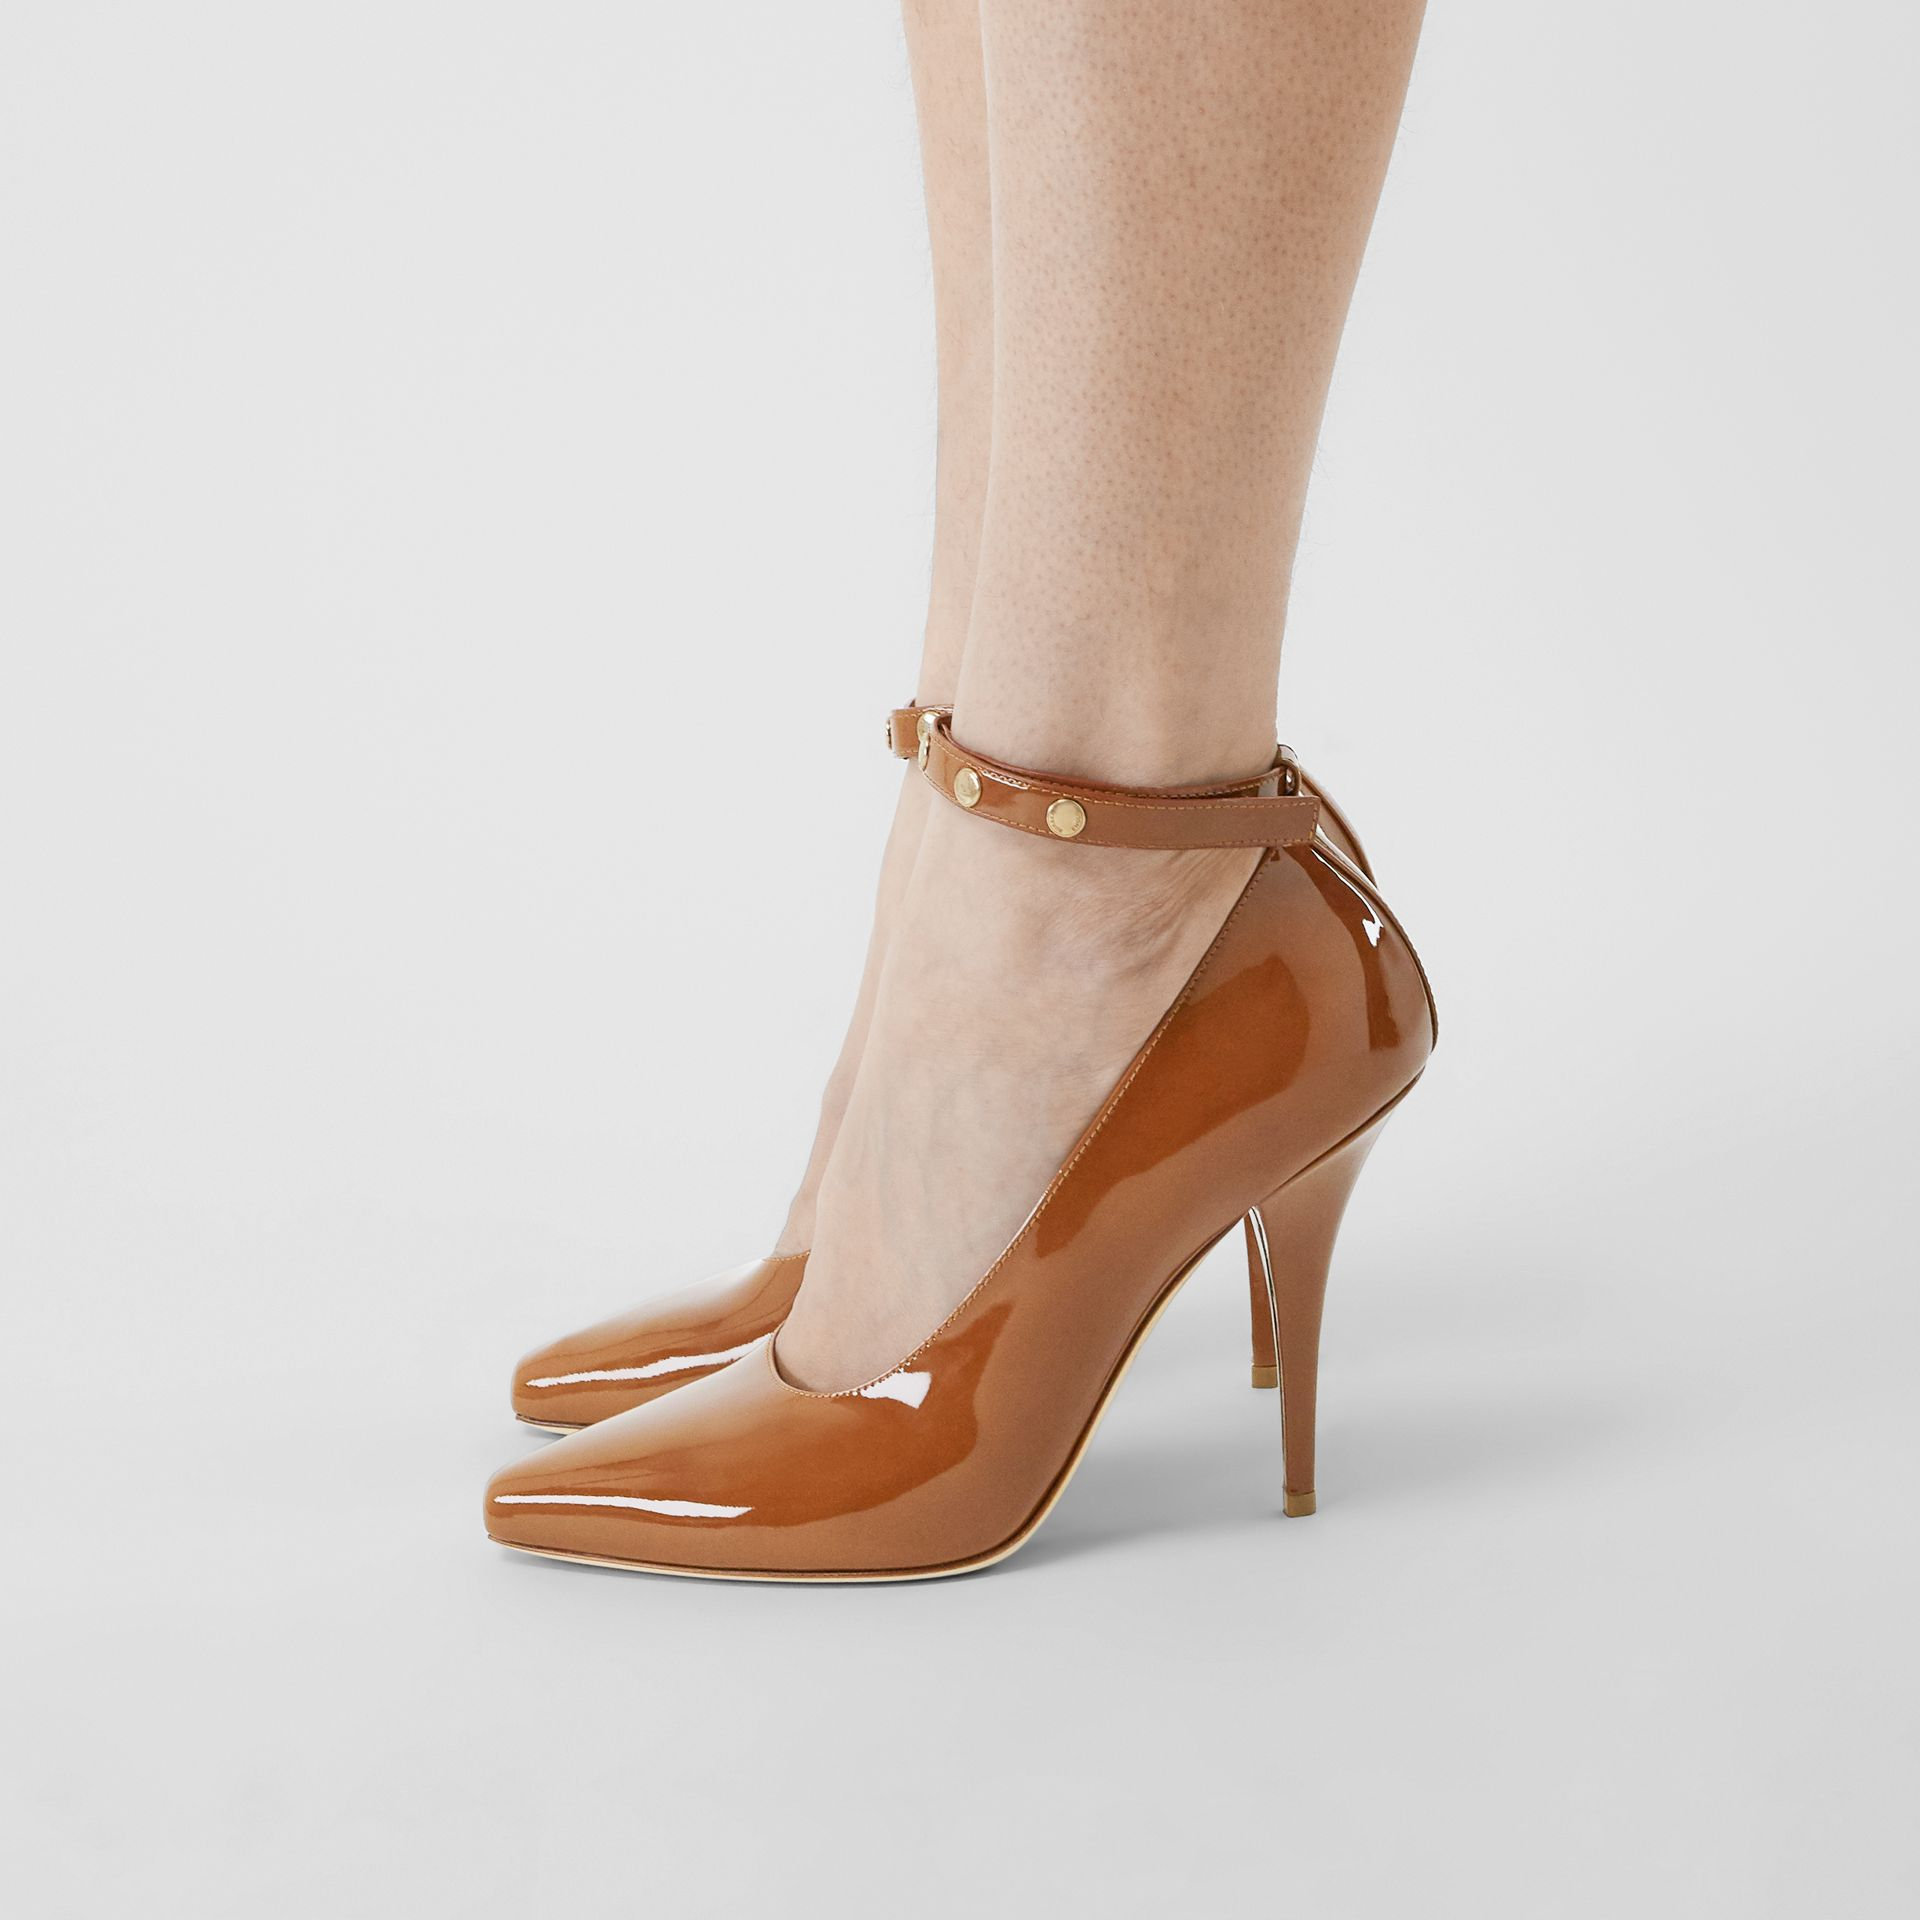 Triple Stud Patent Leather Point-toe Pumps in Tan - Women | Burberry - gallery image 1